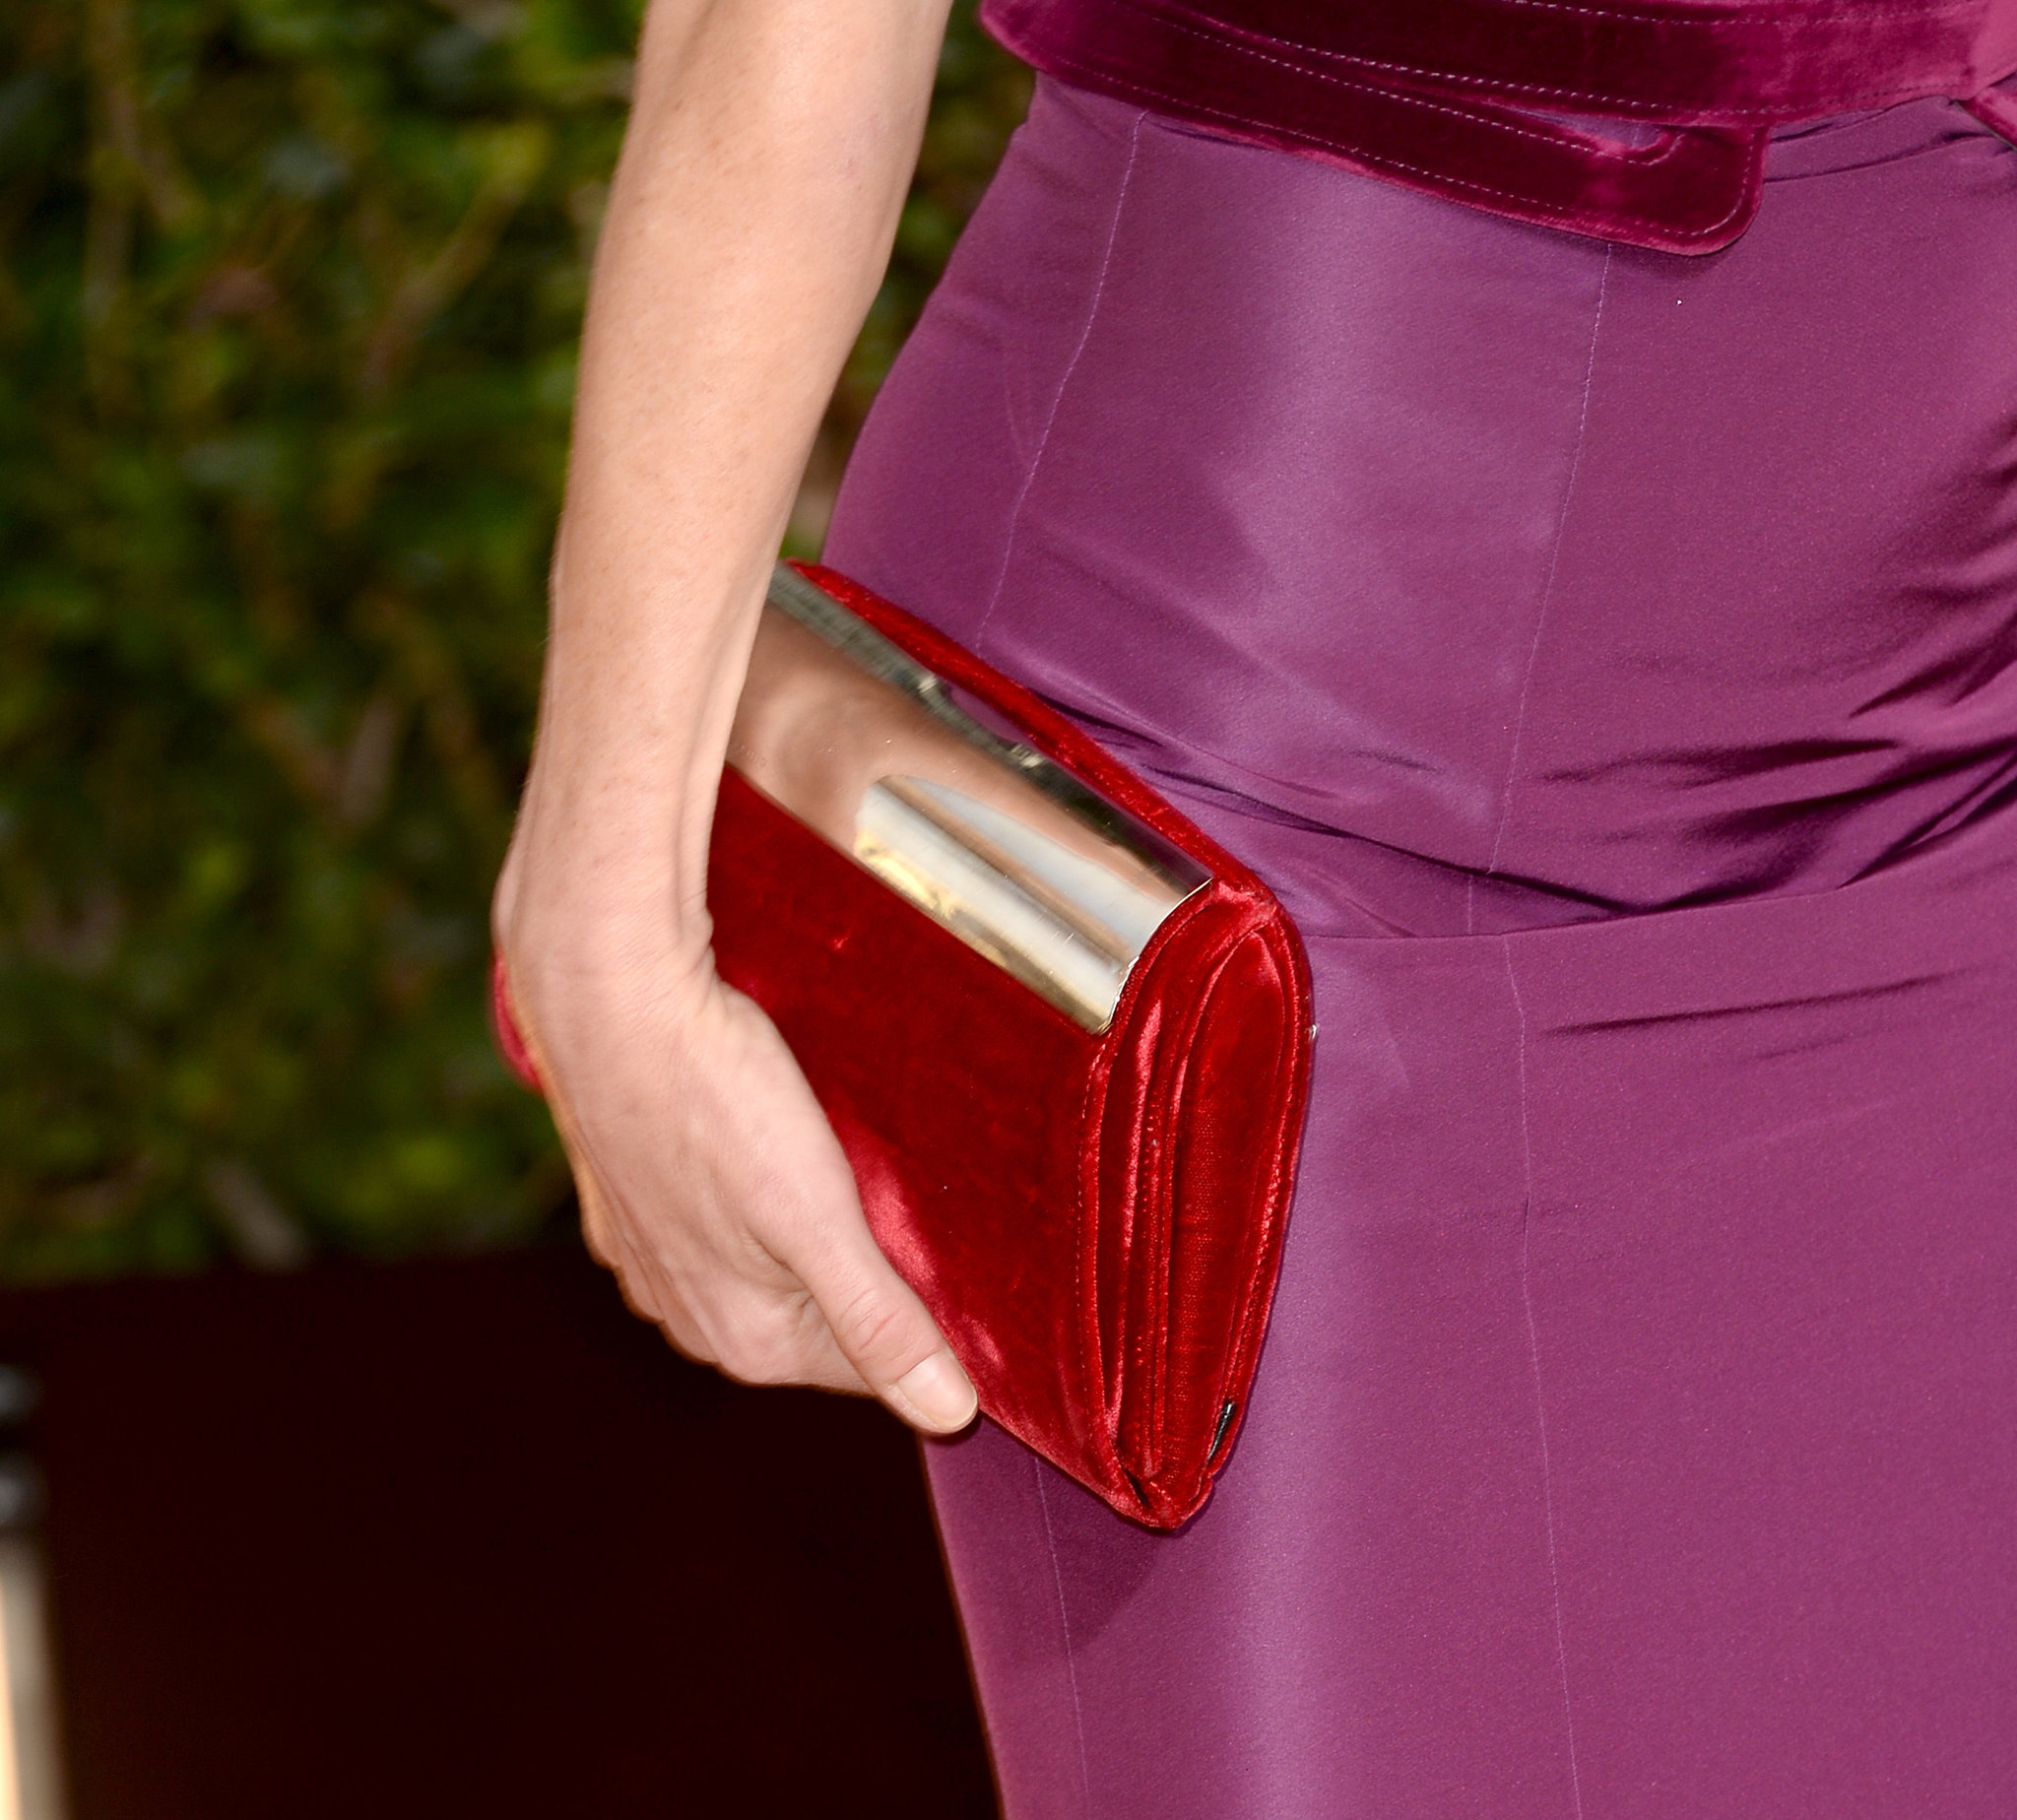 You can't miss Julie Bowen's fiery red clutch.